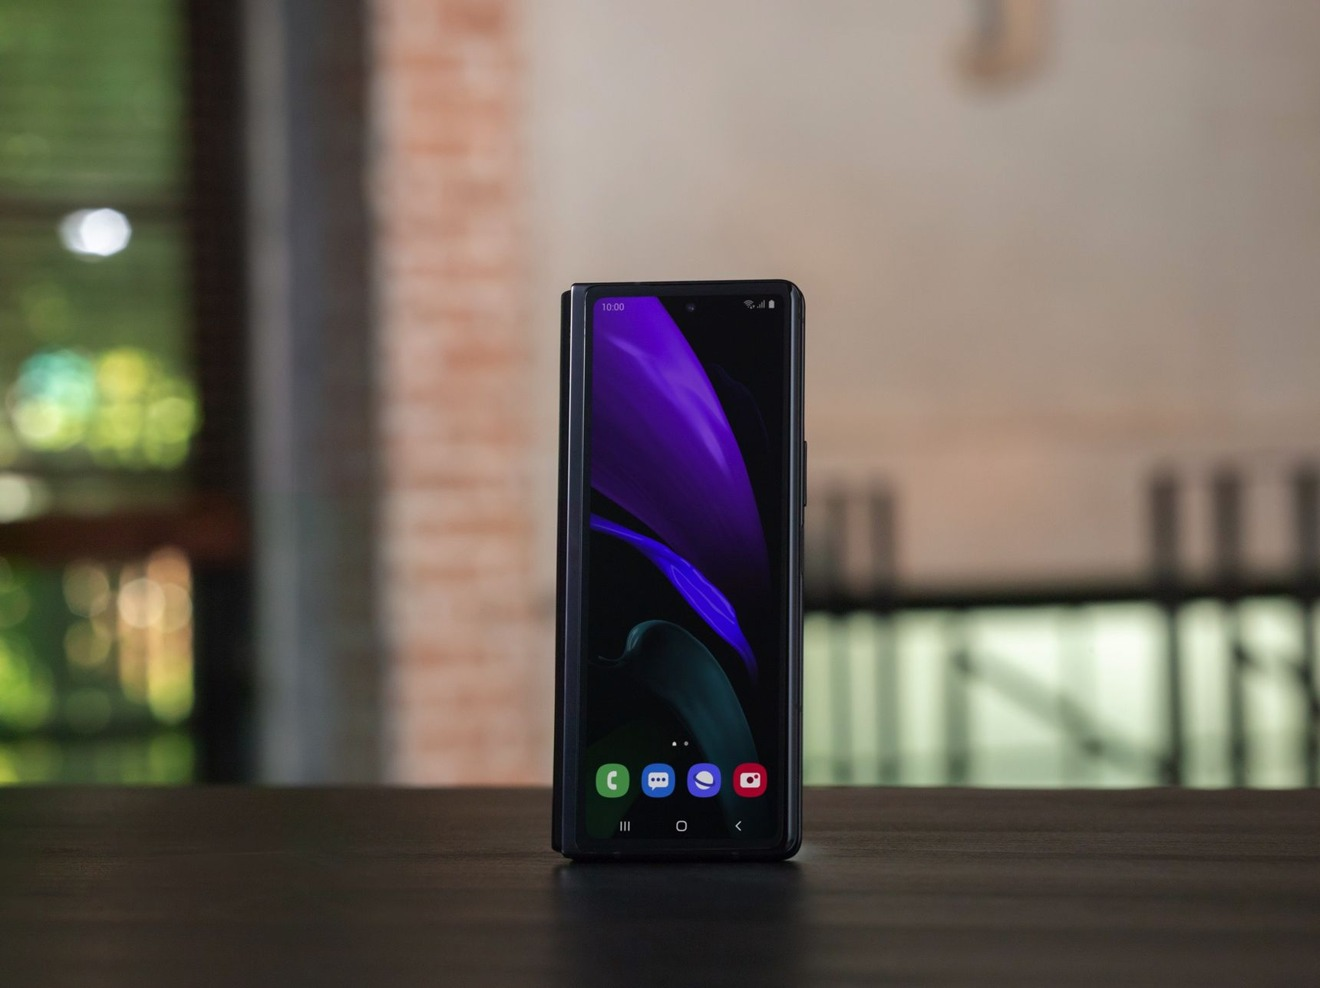 Samsung Galaxy Z Fold 2 arrives on September 18 for $1999